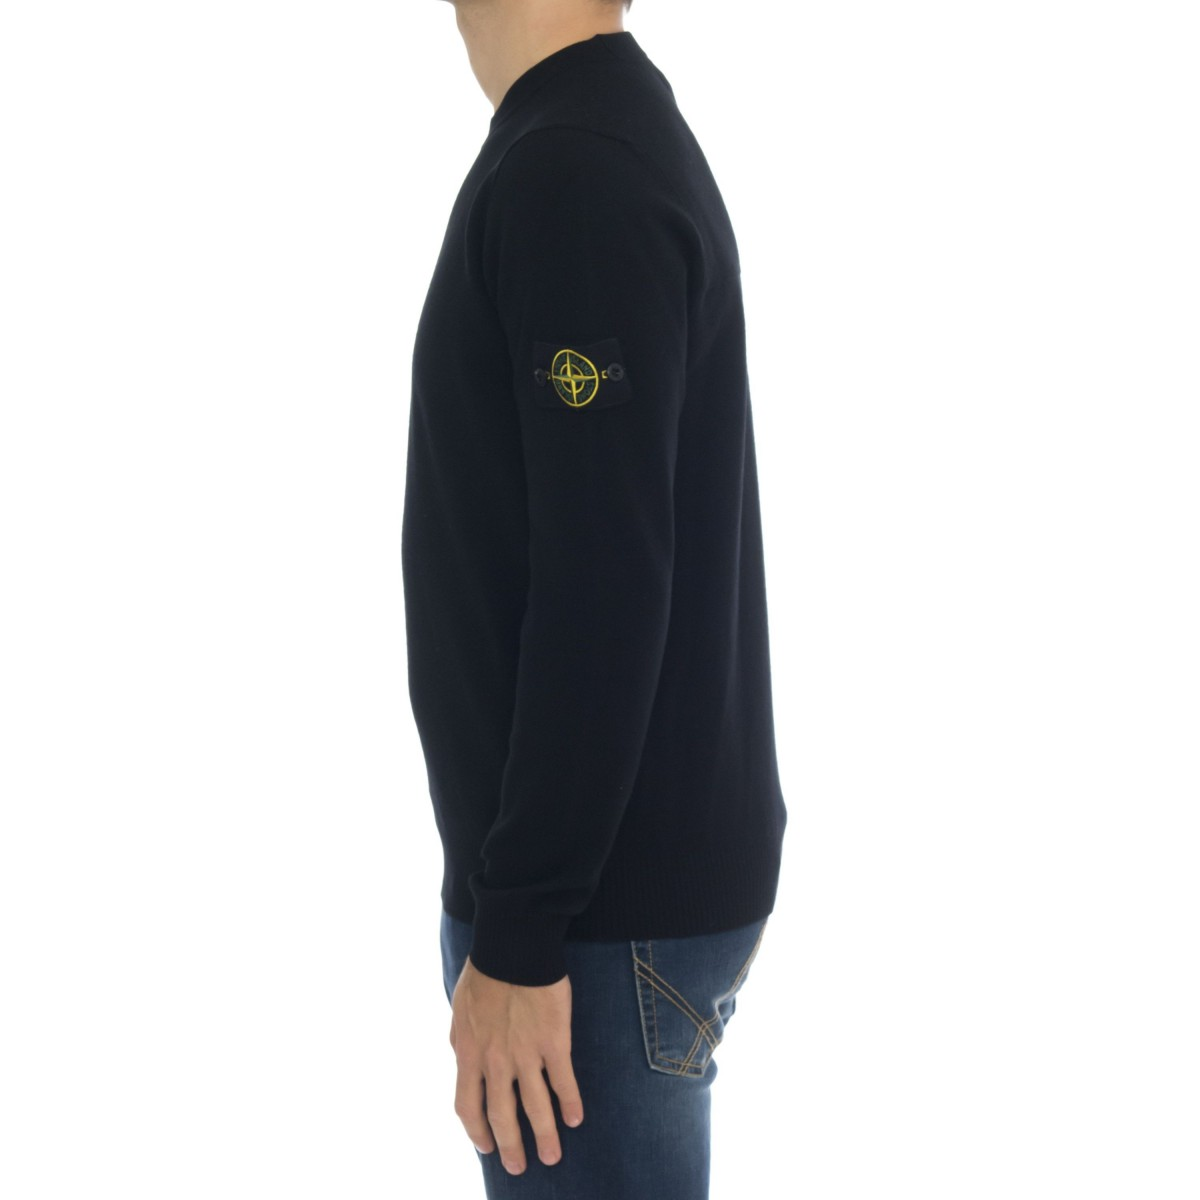 Crewneck knit - 591A1 wool strech light